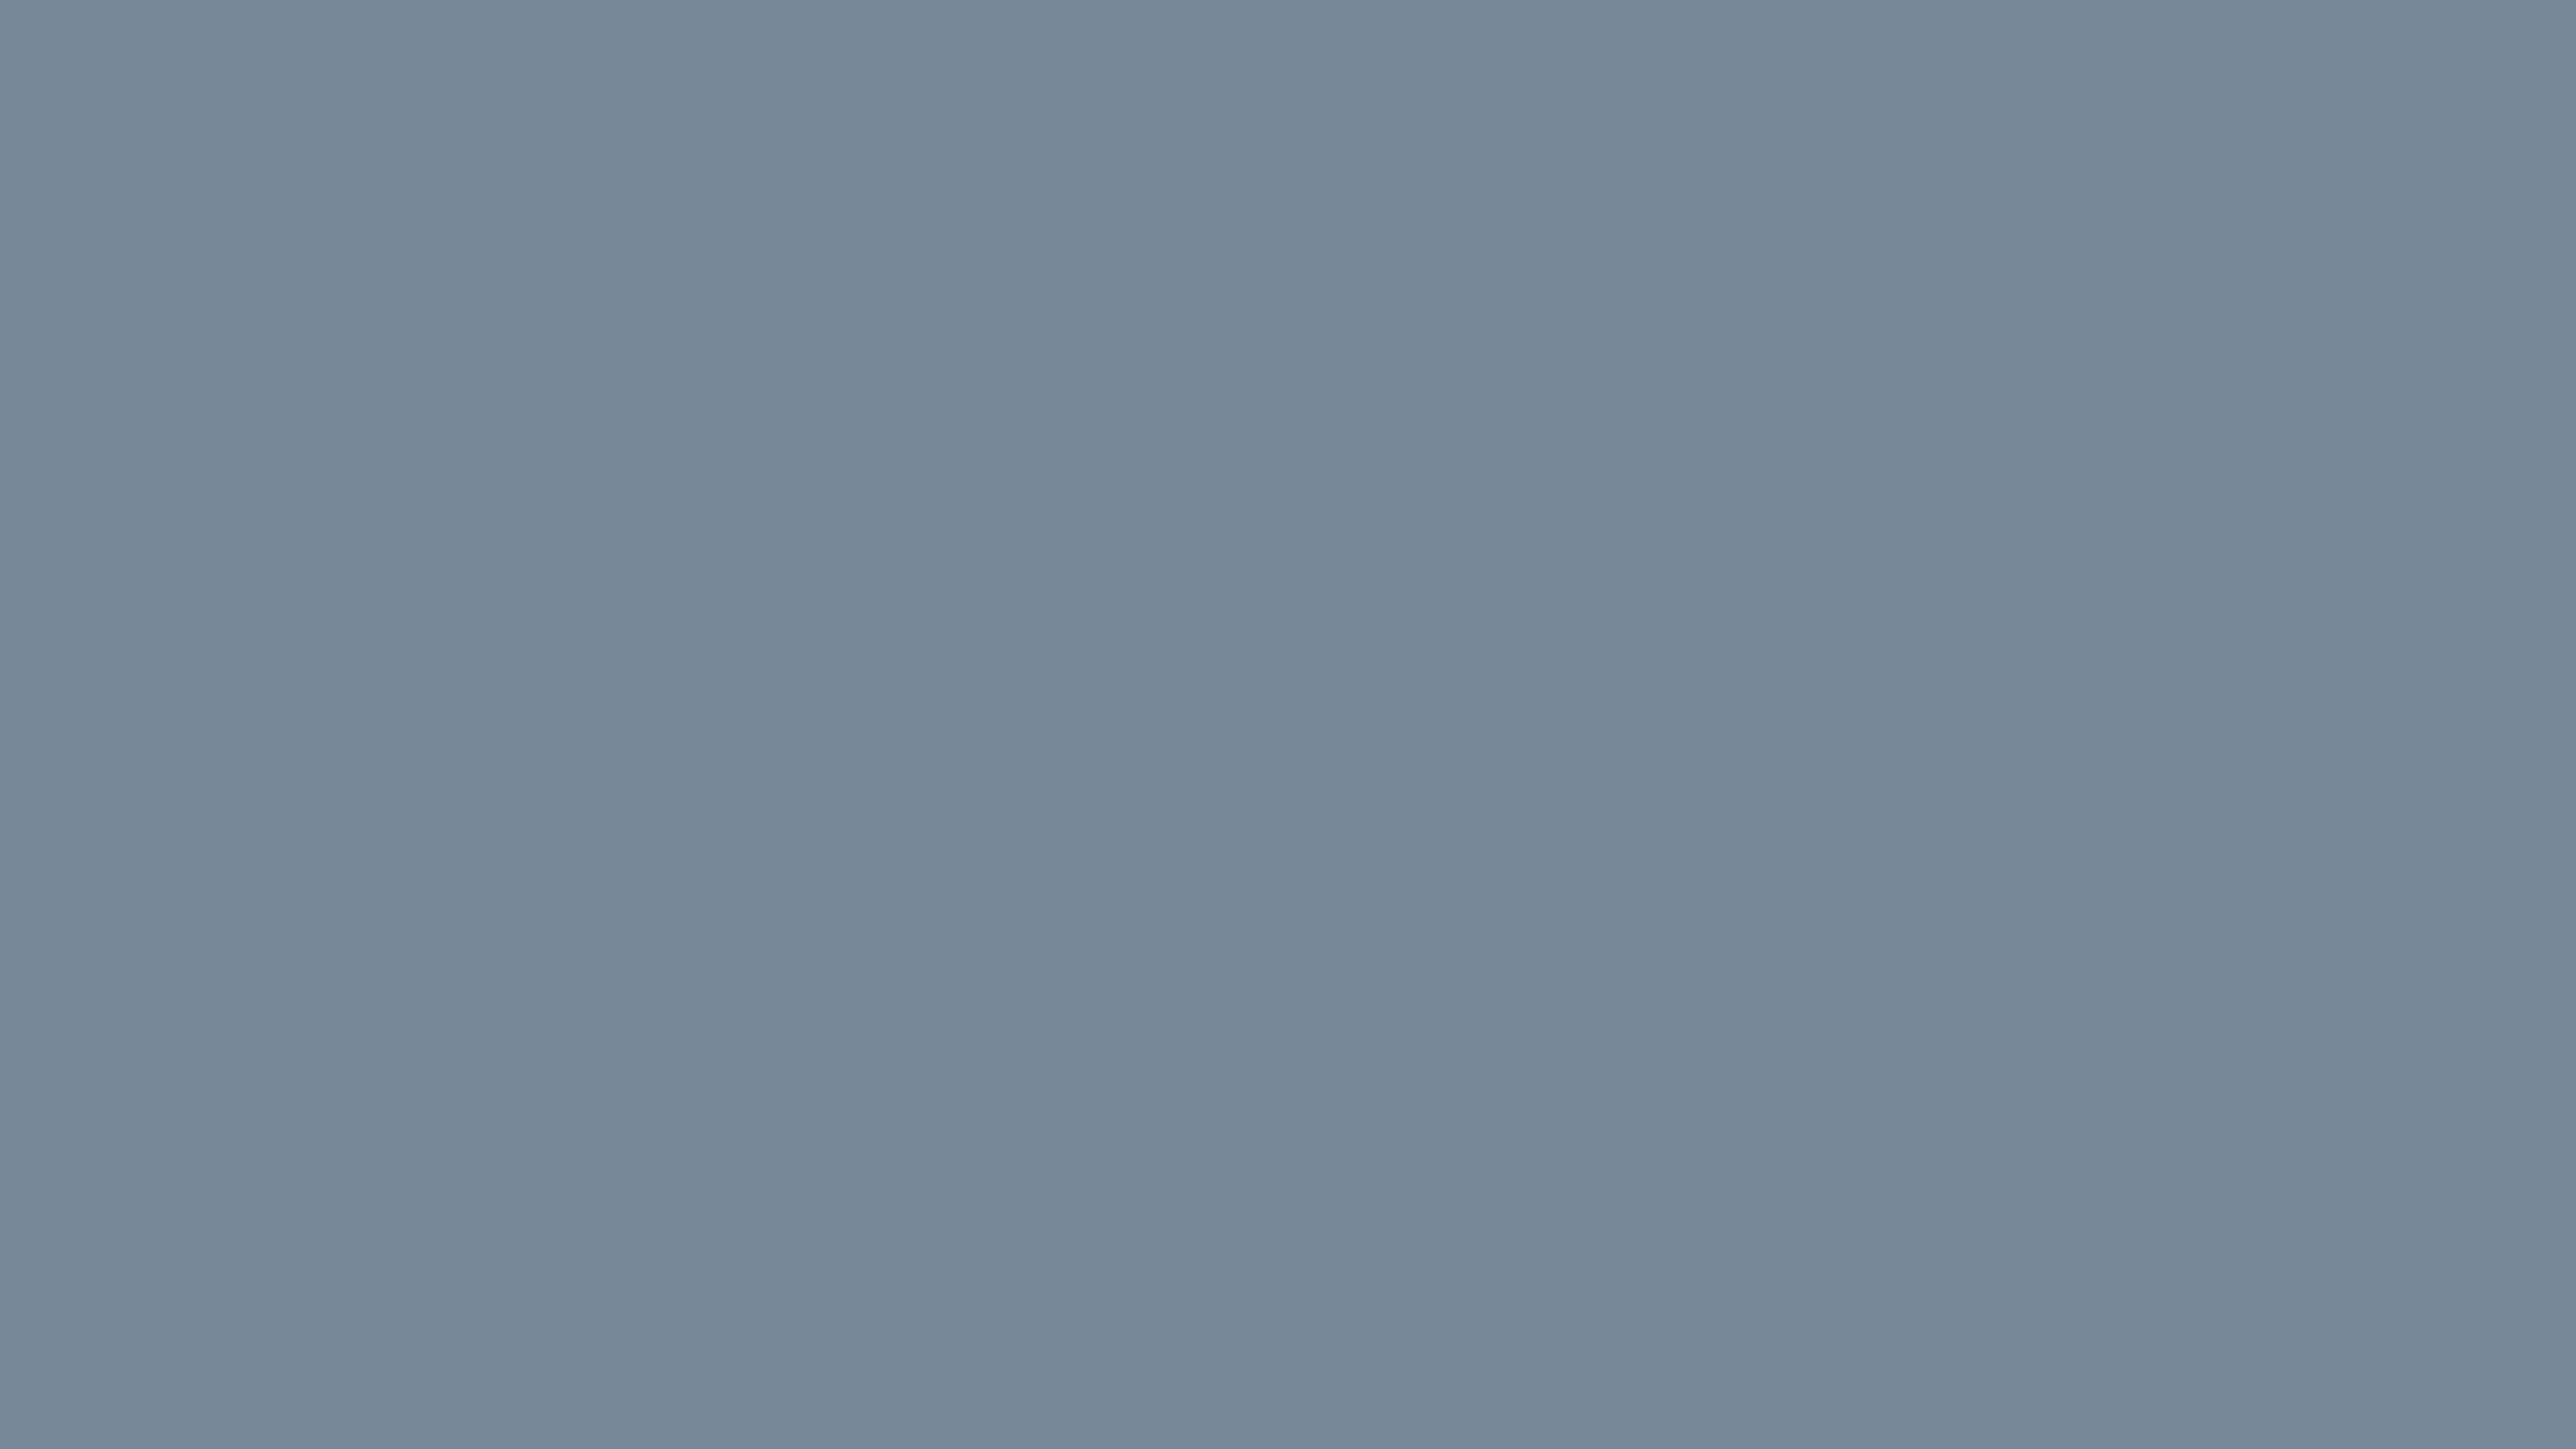 What Color Is Slate : Light slate gray solid color background